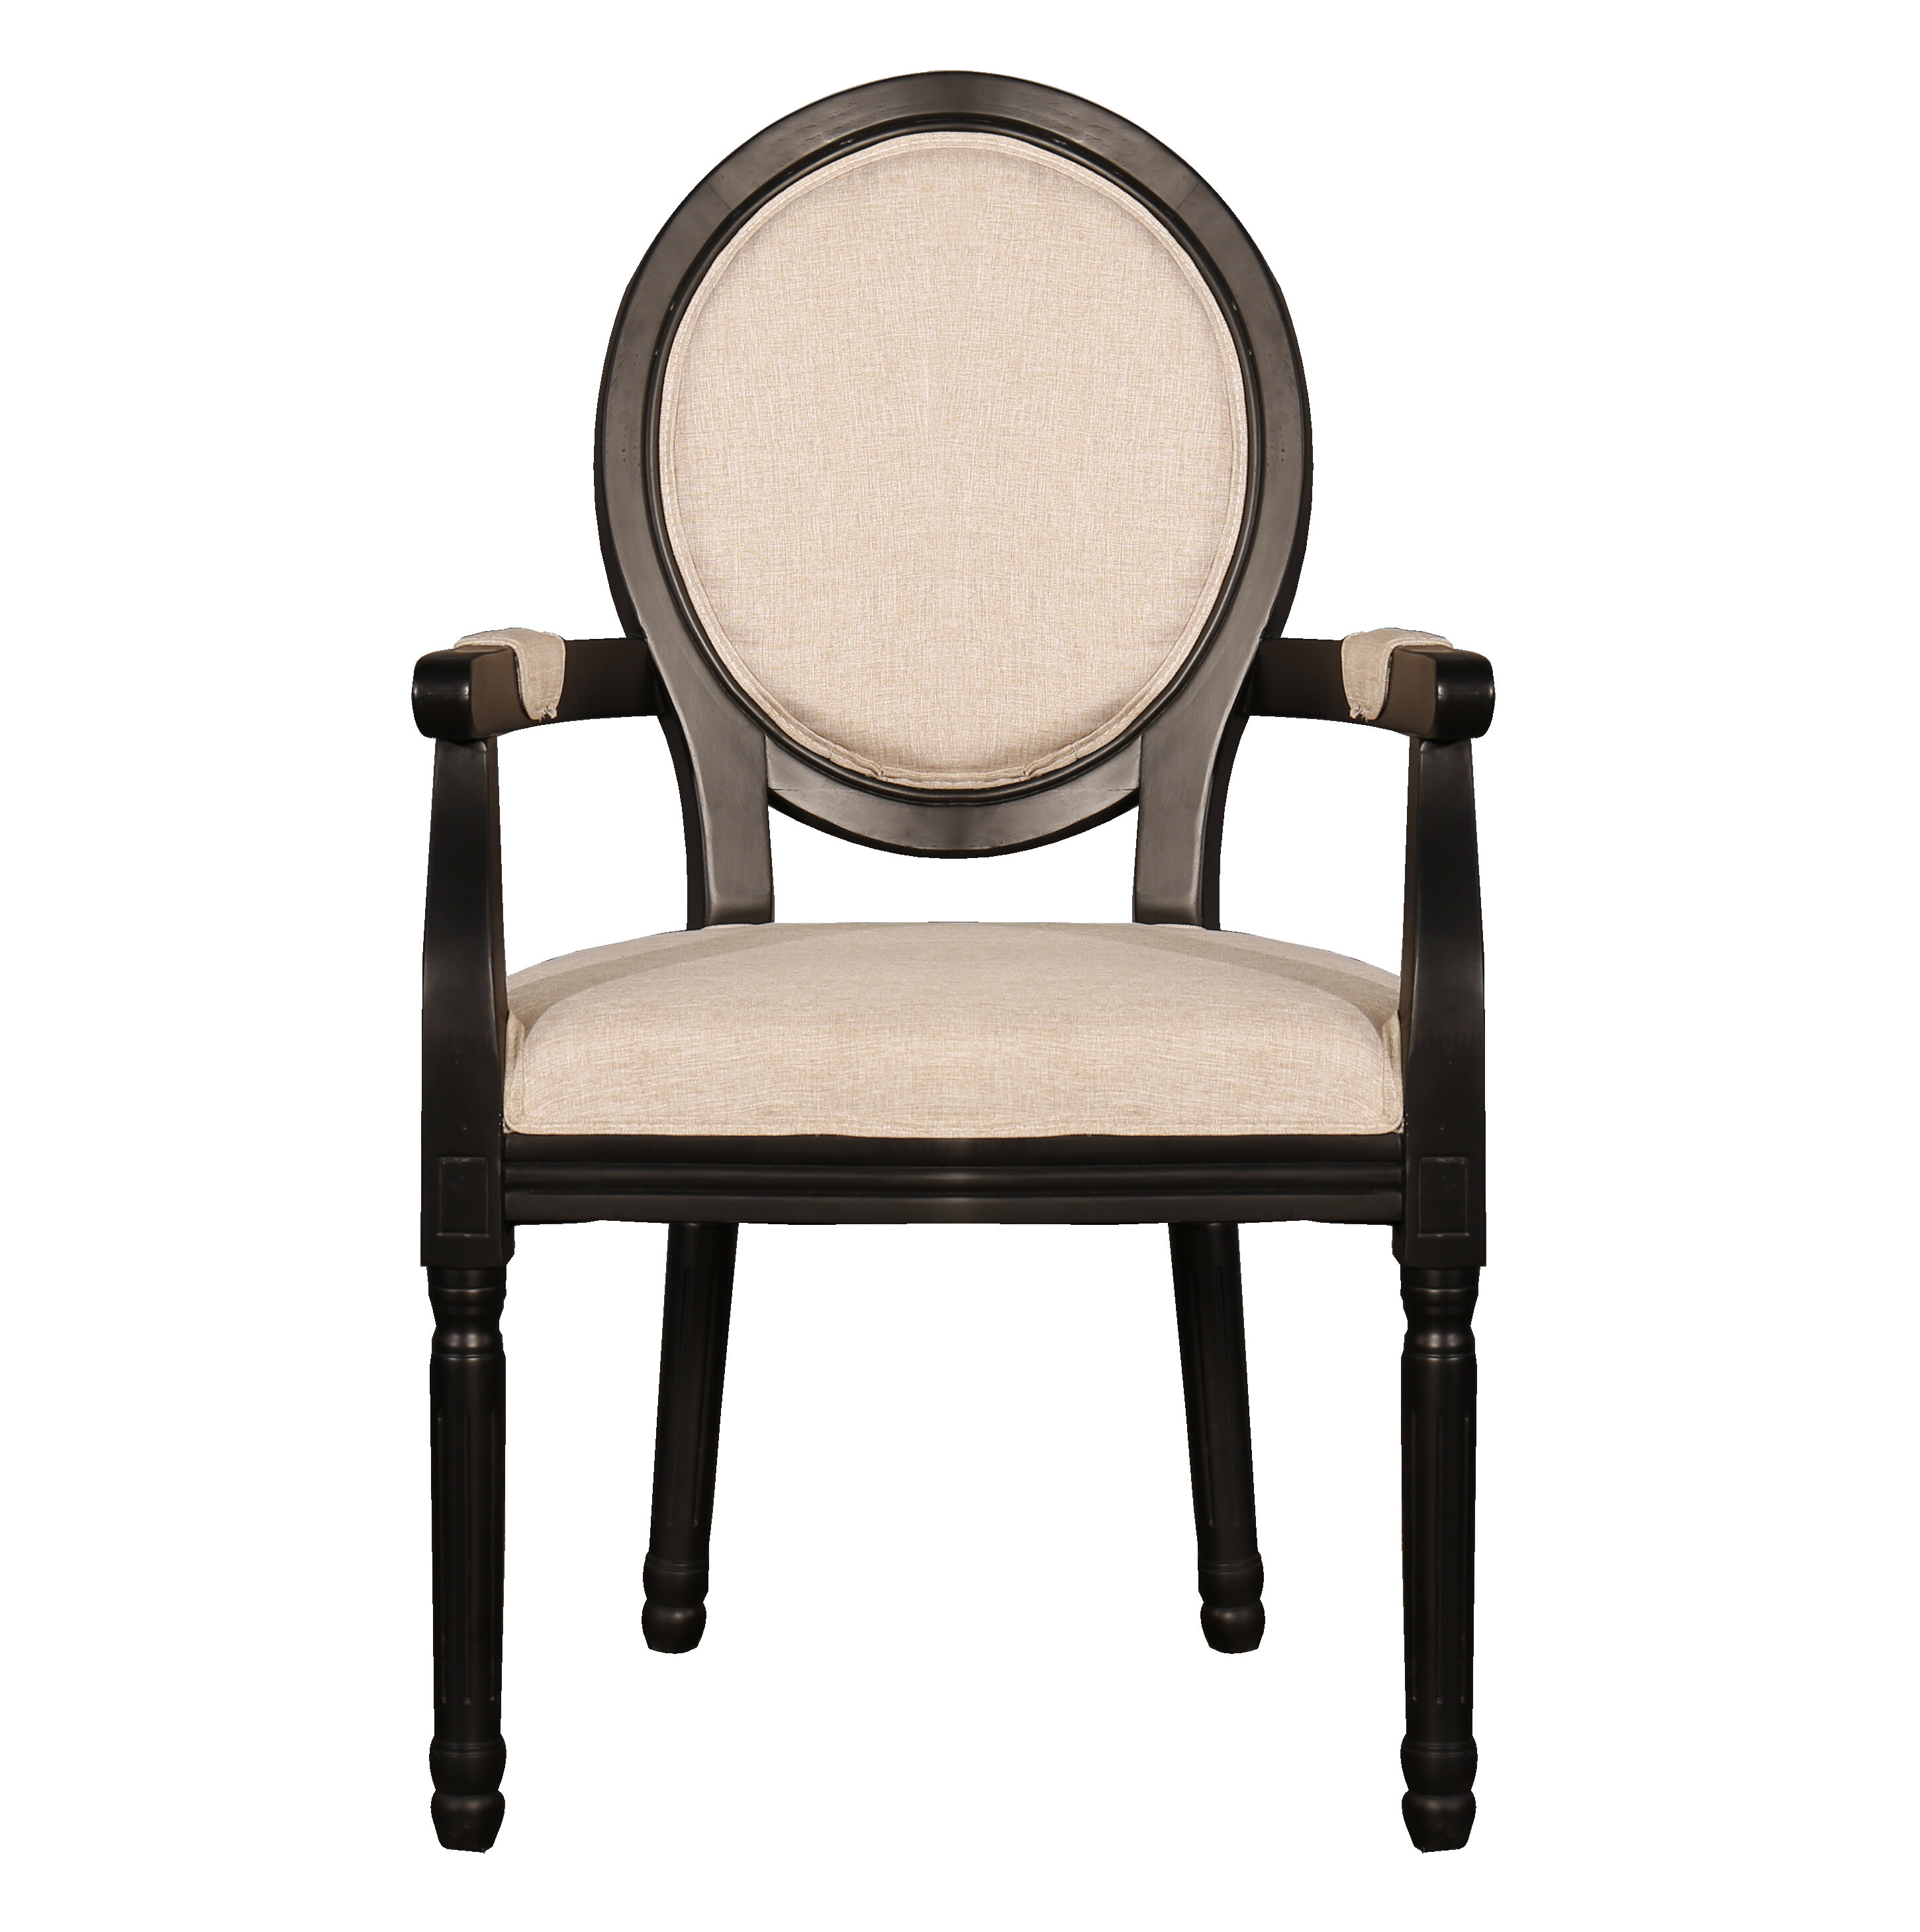 Ophelia & Co Raylen Distressed Room Upholstered Dining Chair